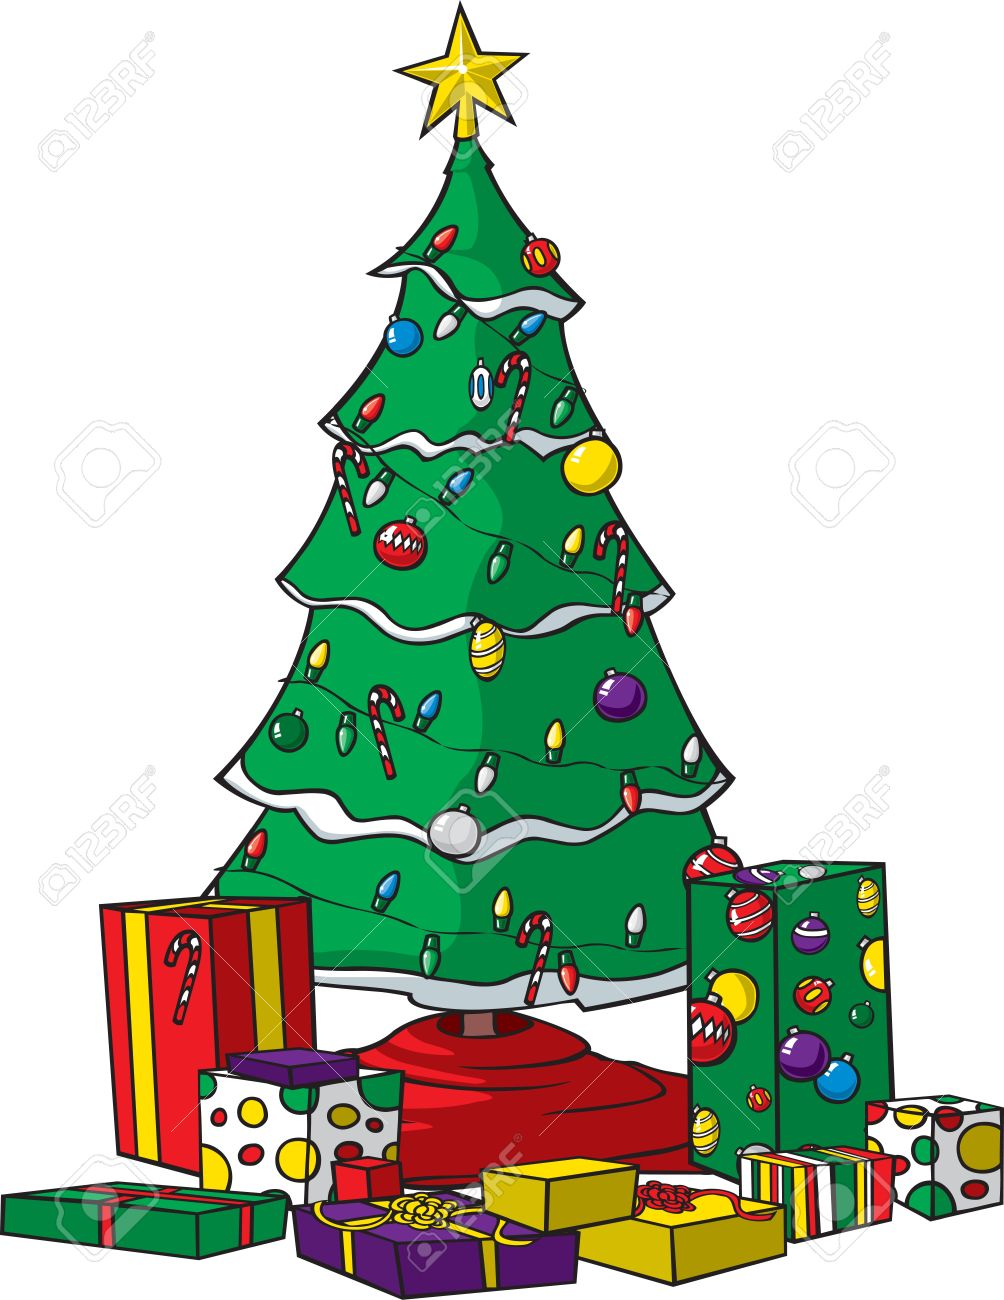 A Vector Cartoon Christmas Tree With Ornaments Lights And Presents